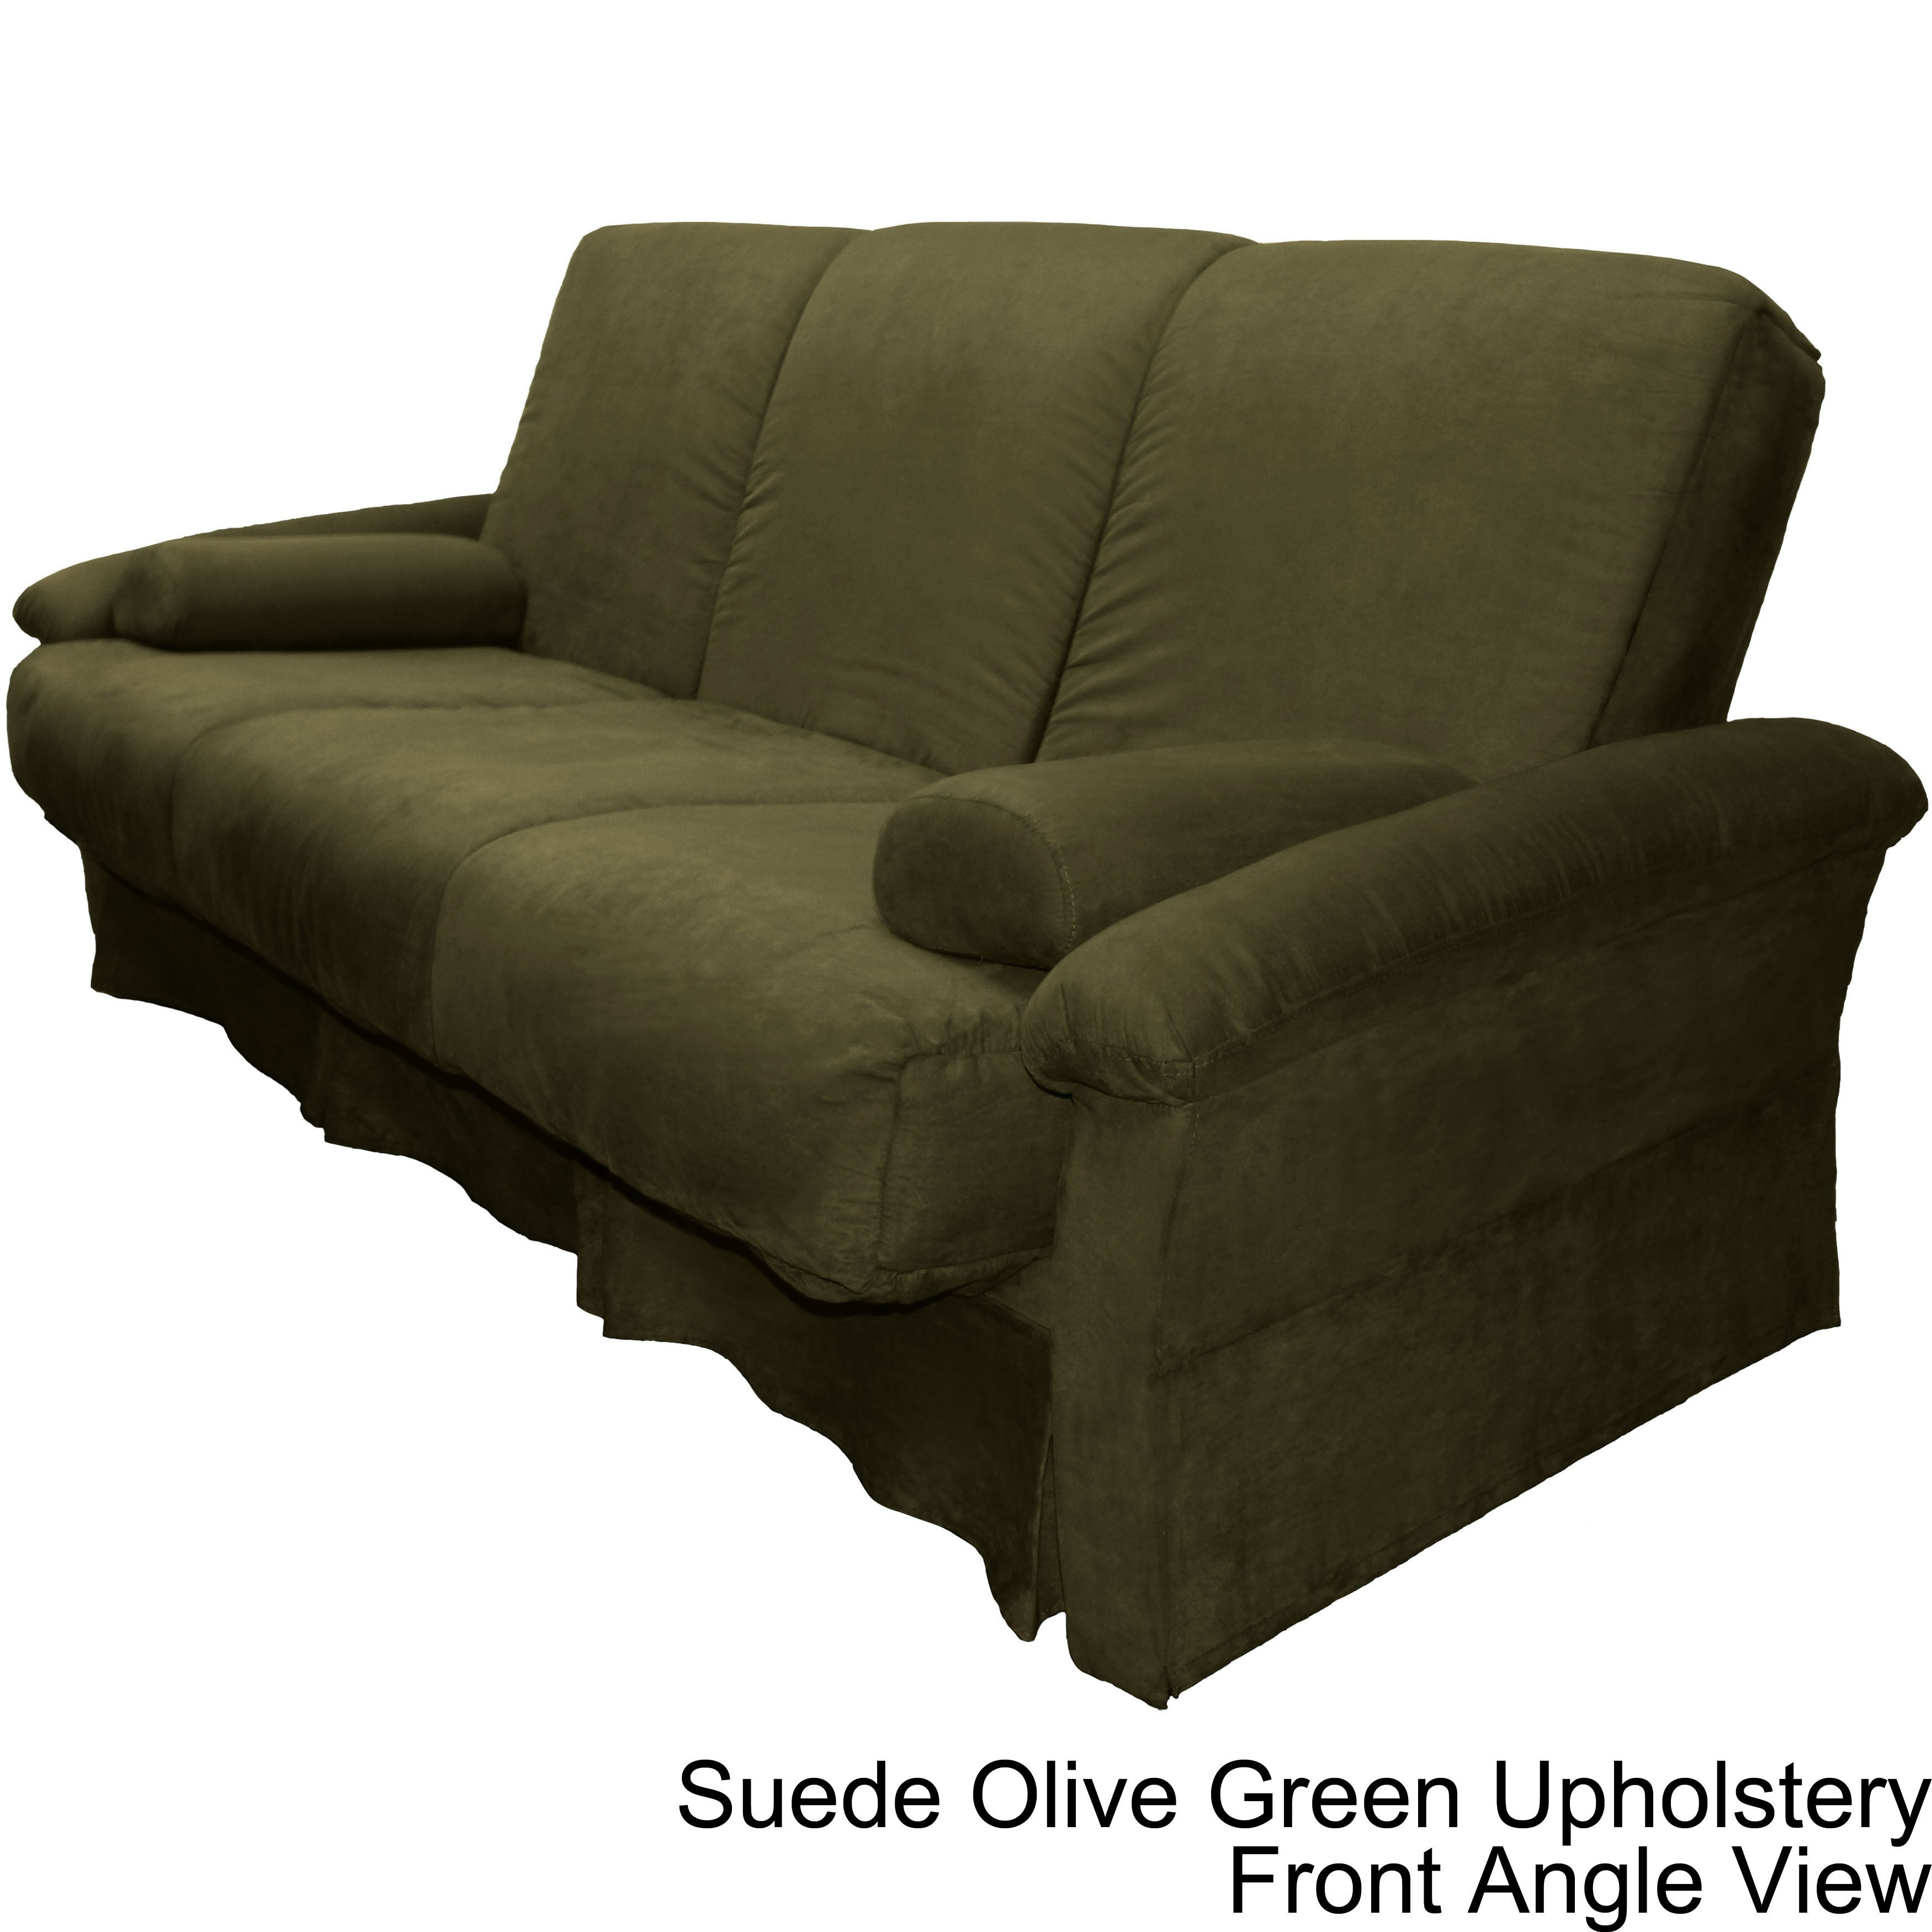 Covered Pillow top Mattress and Futon or Chair Sleeper Set Free